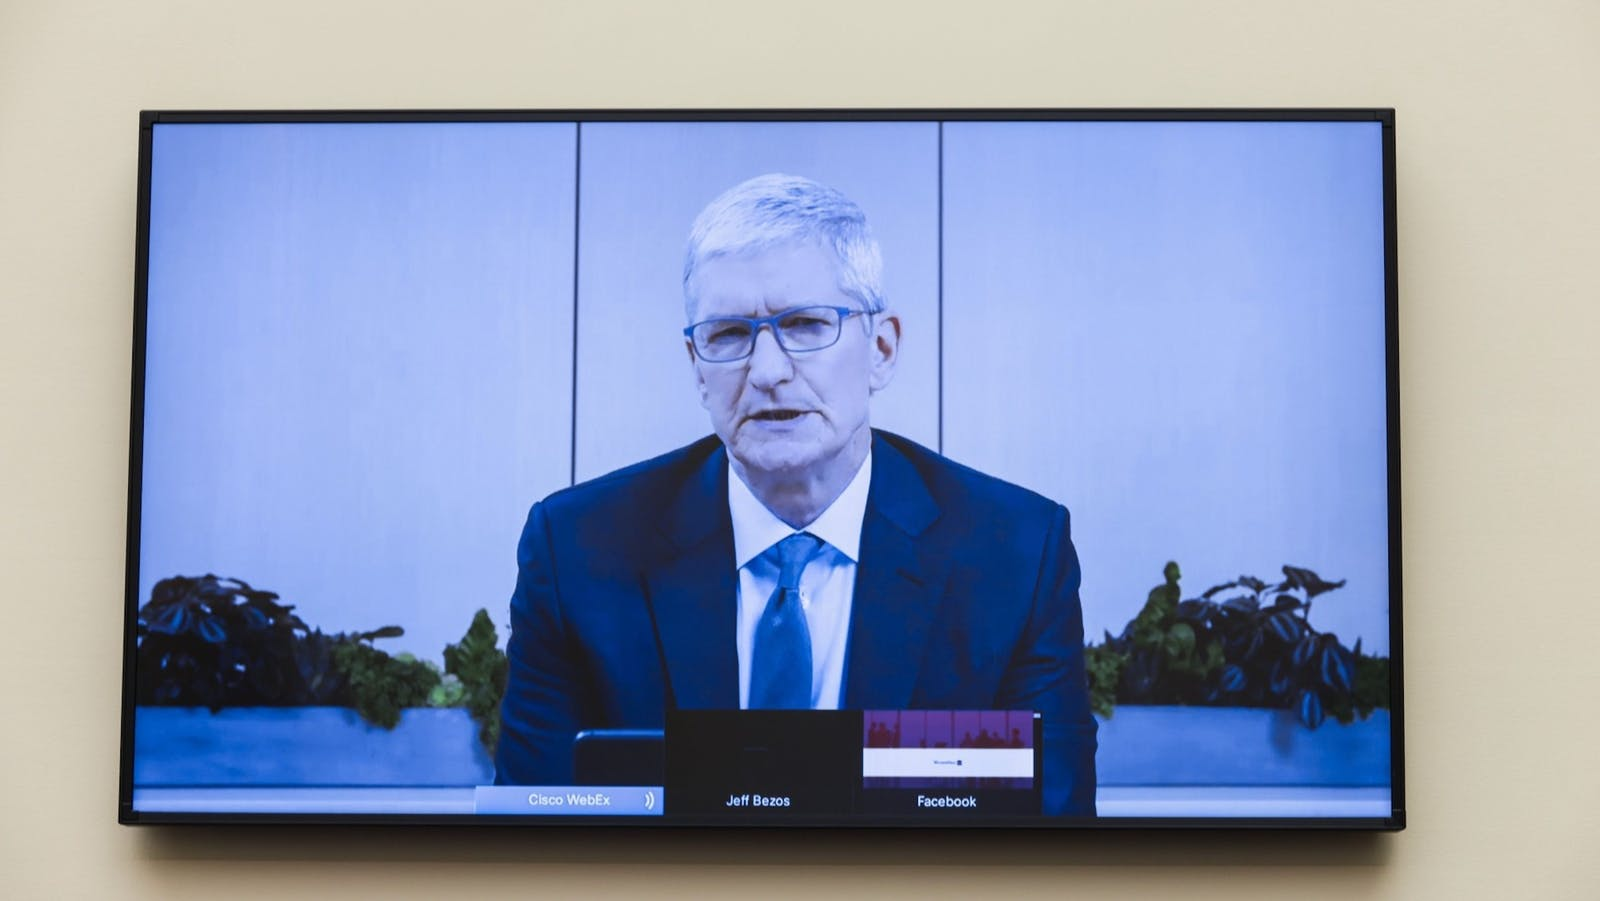 Tim Cook, chief executive officer of Apple Inc., speaks via videoconference during a House Judiciary Subcommittee hearing in Washington, D.C.. Photo: Bloomberg.